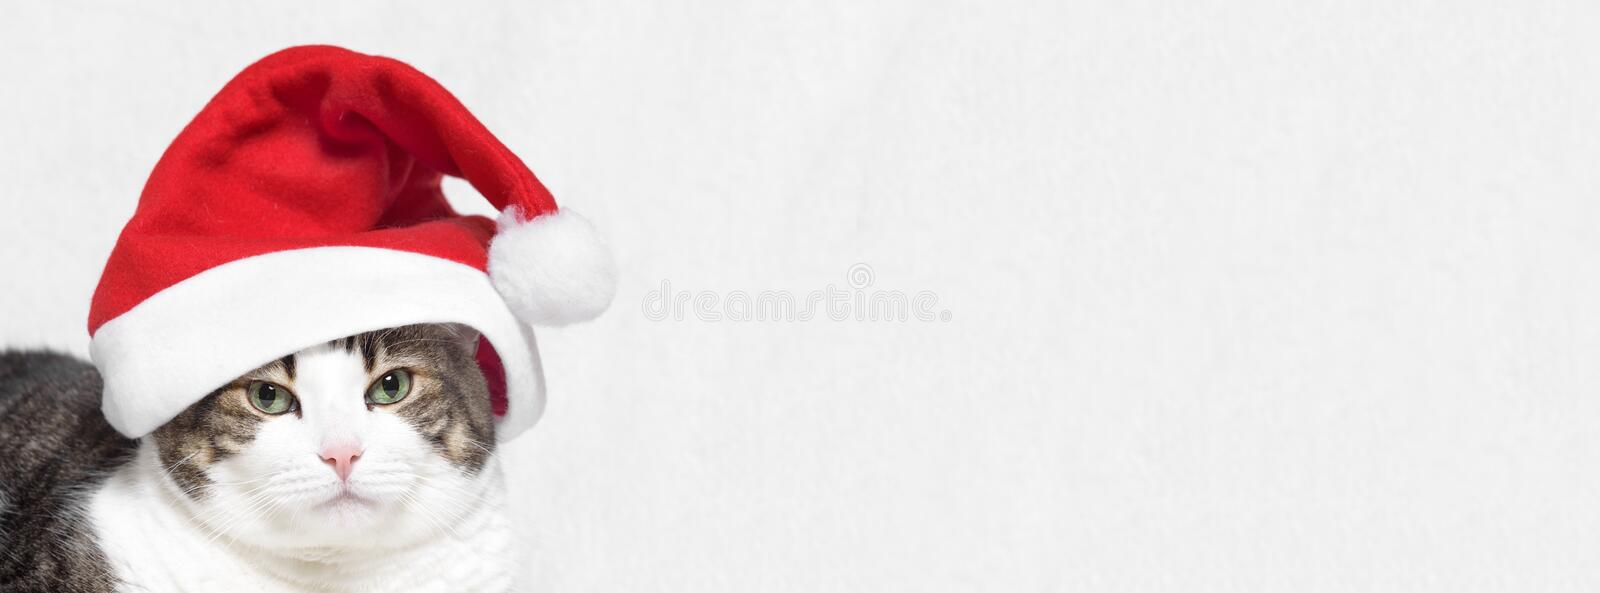 Christmas Banner of Adorable Cat in red Santa claus hat royalty free stock image